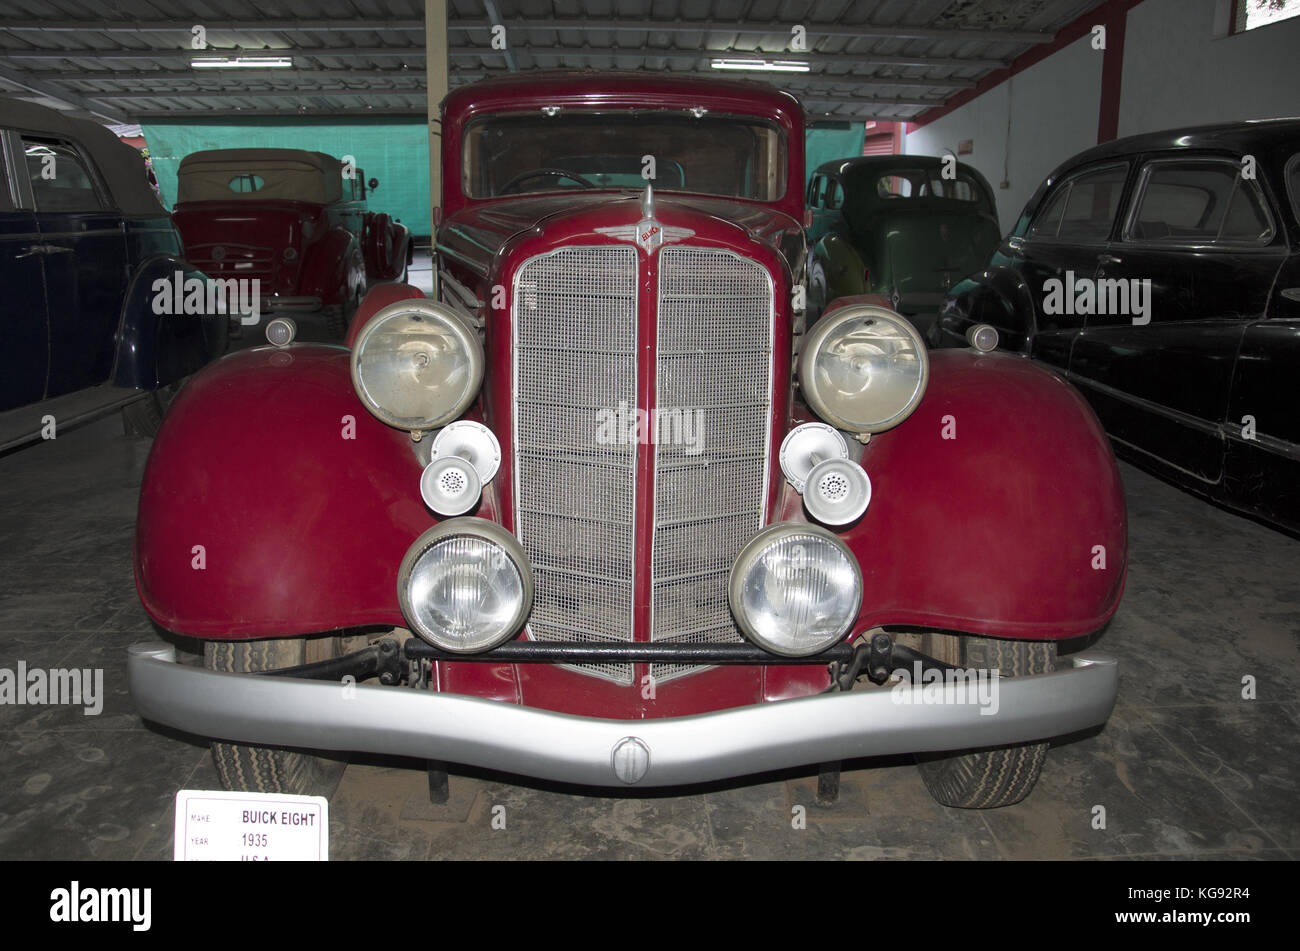 Buick Eight (Year 1935), USA. Auto world vintage car museum Stock ...